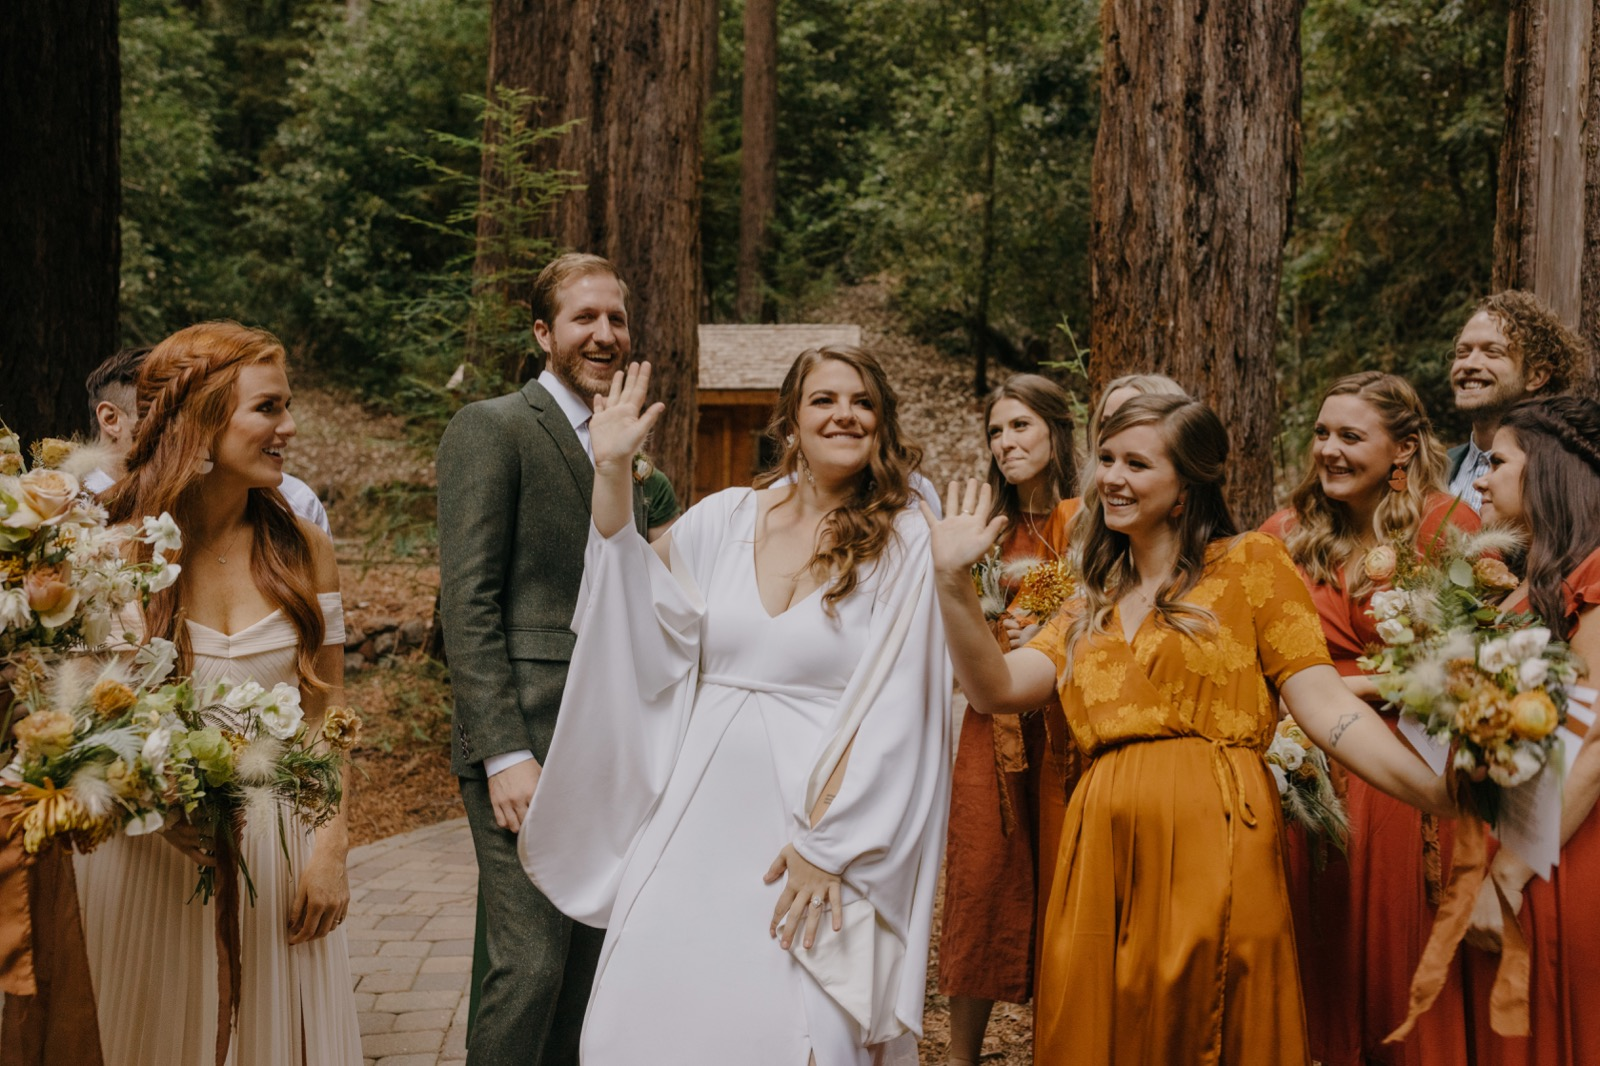 088_E&J 04244_the-waterfall-lodge_forest_wedding_ben-lomond_intimate